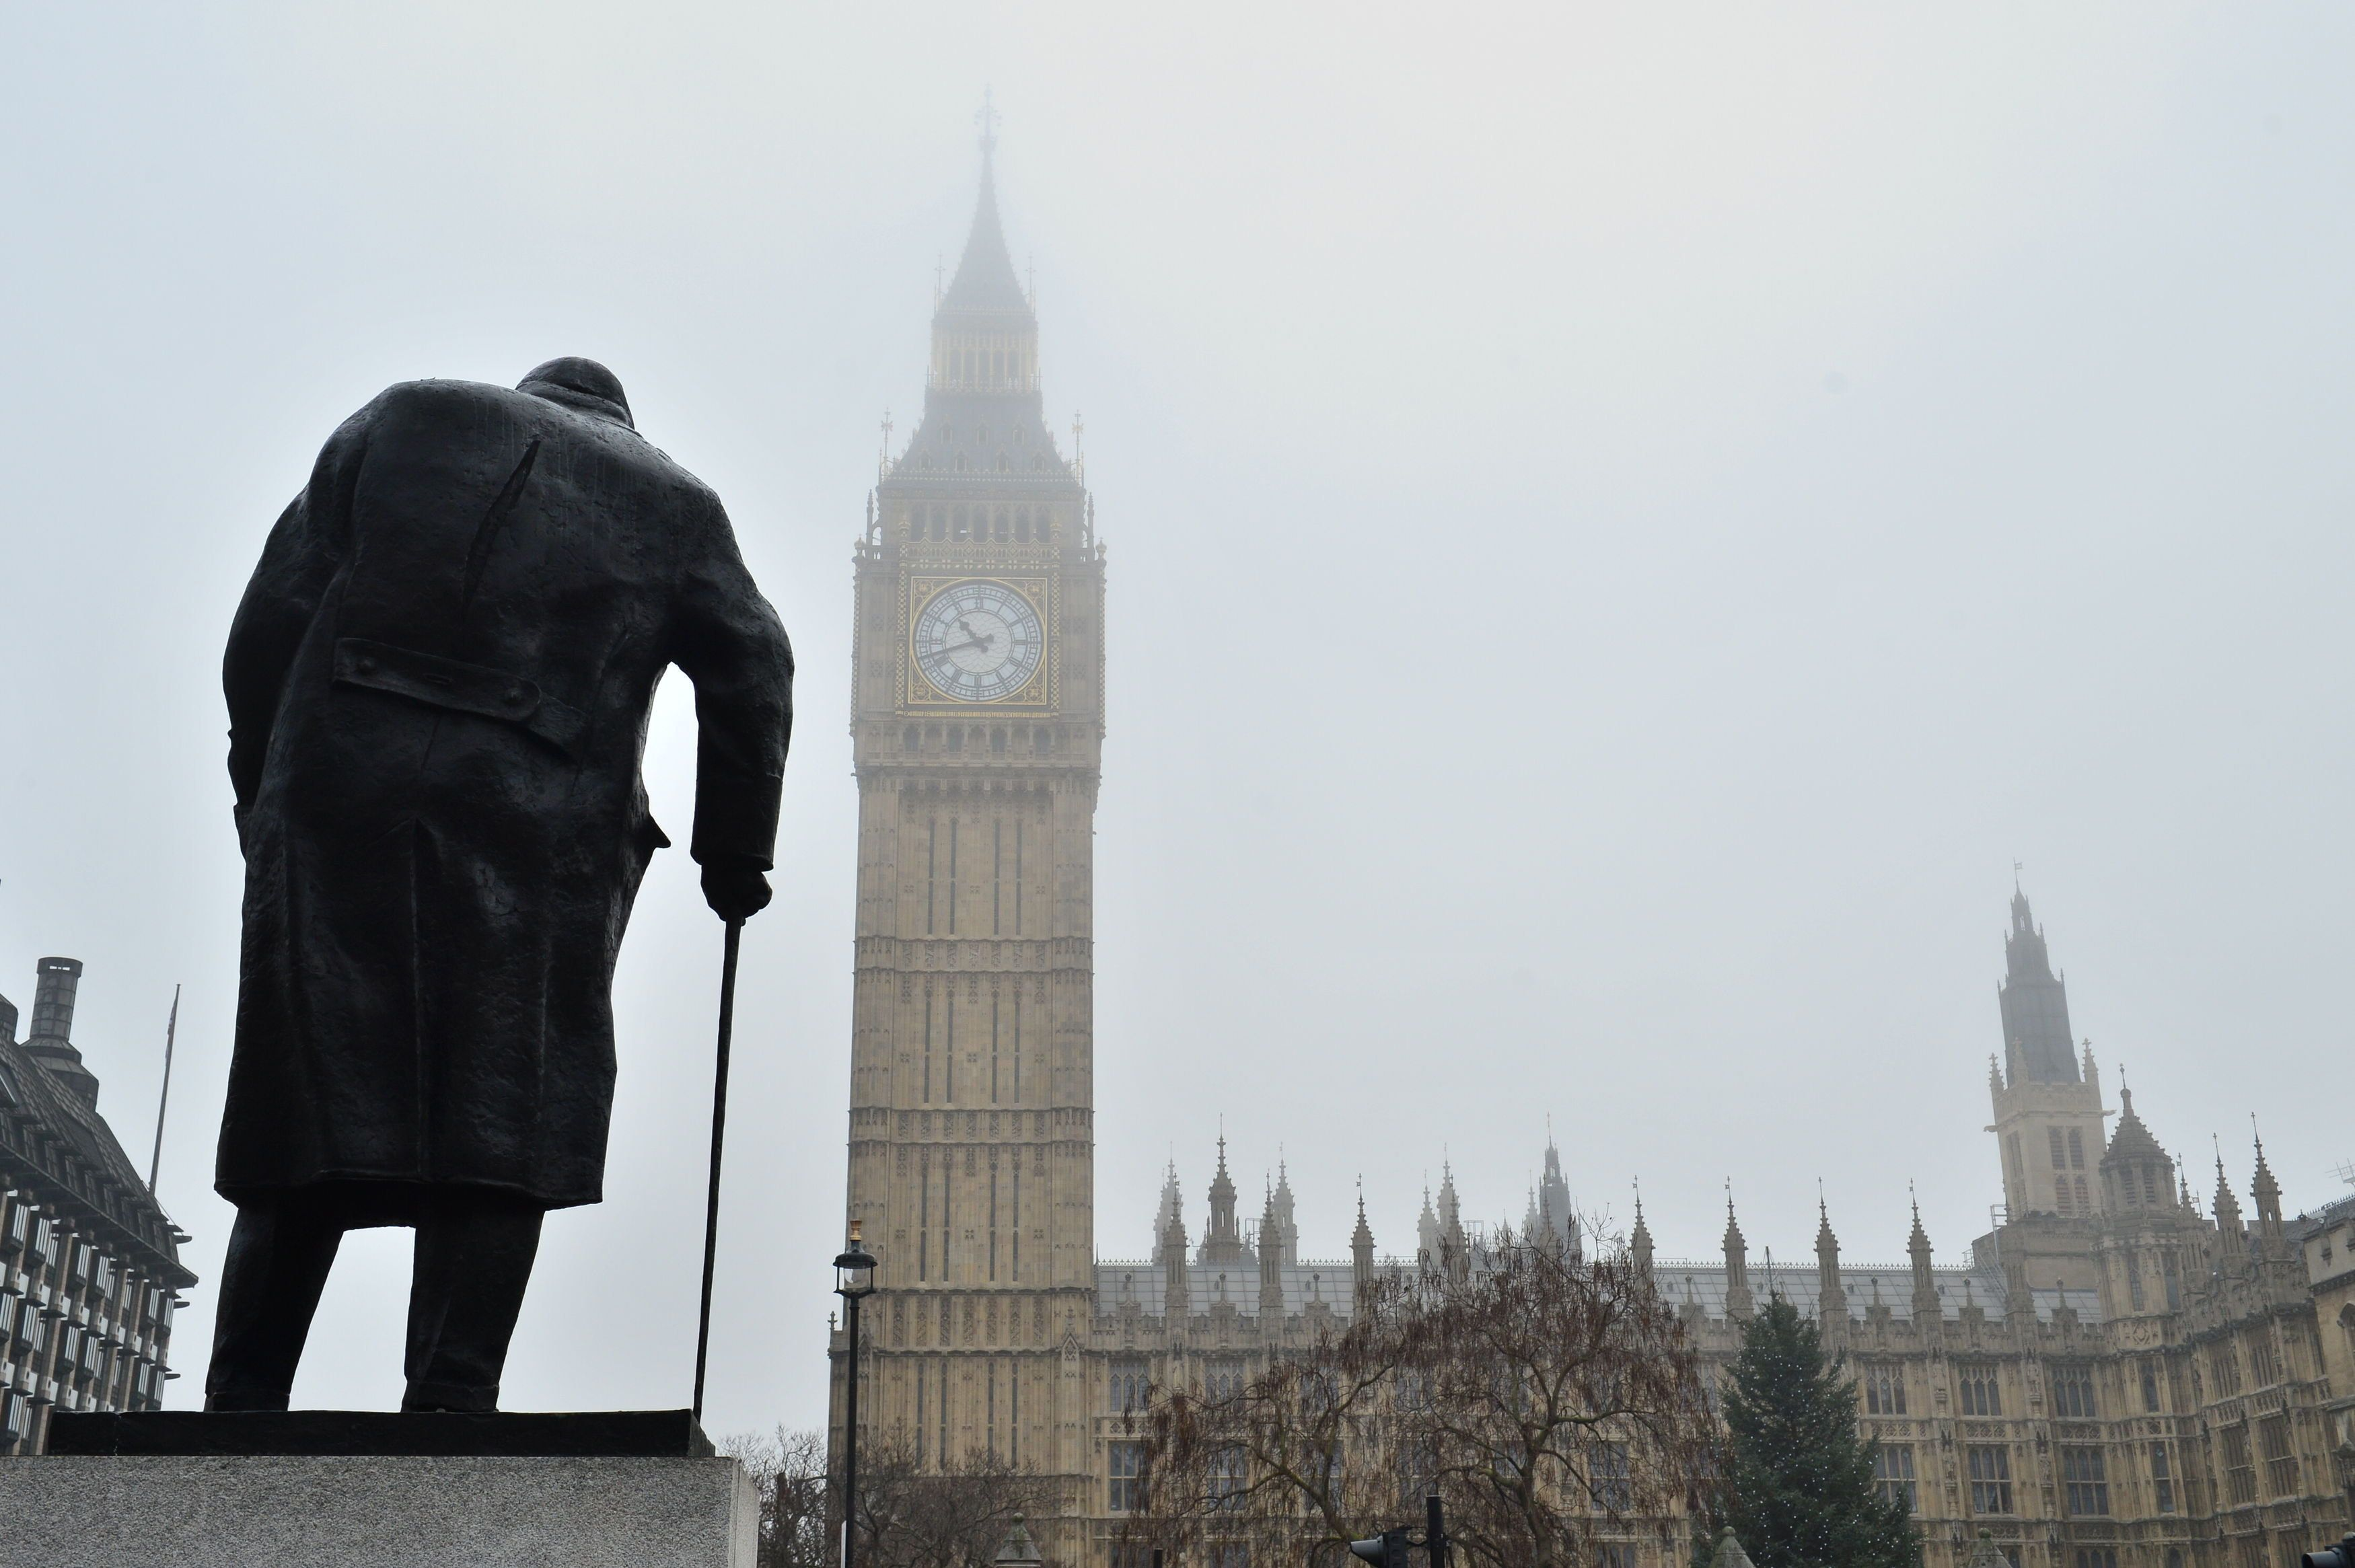 Parliament Square Is Finally Getting A Statue Of A Woman